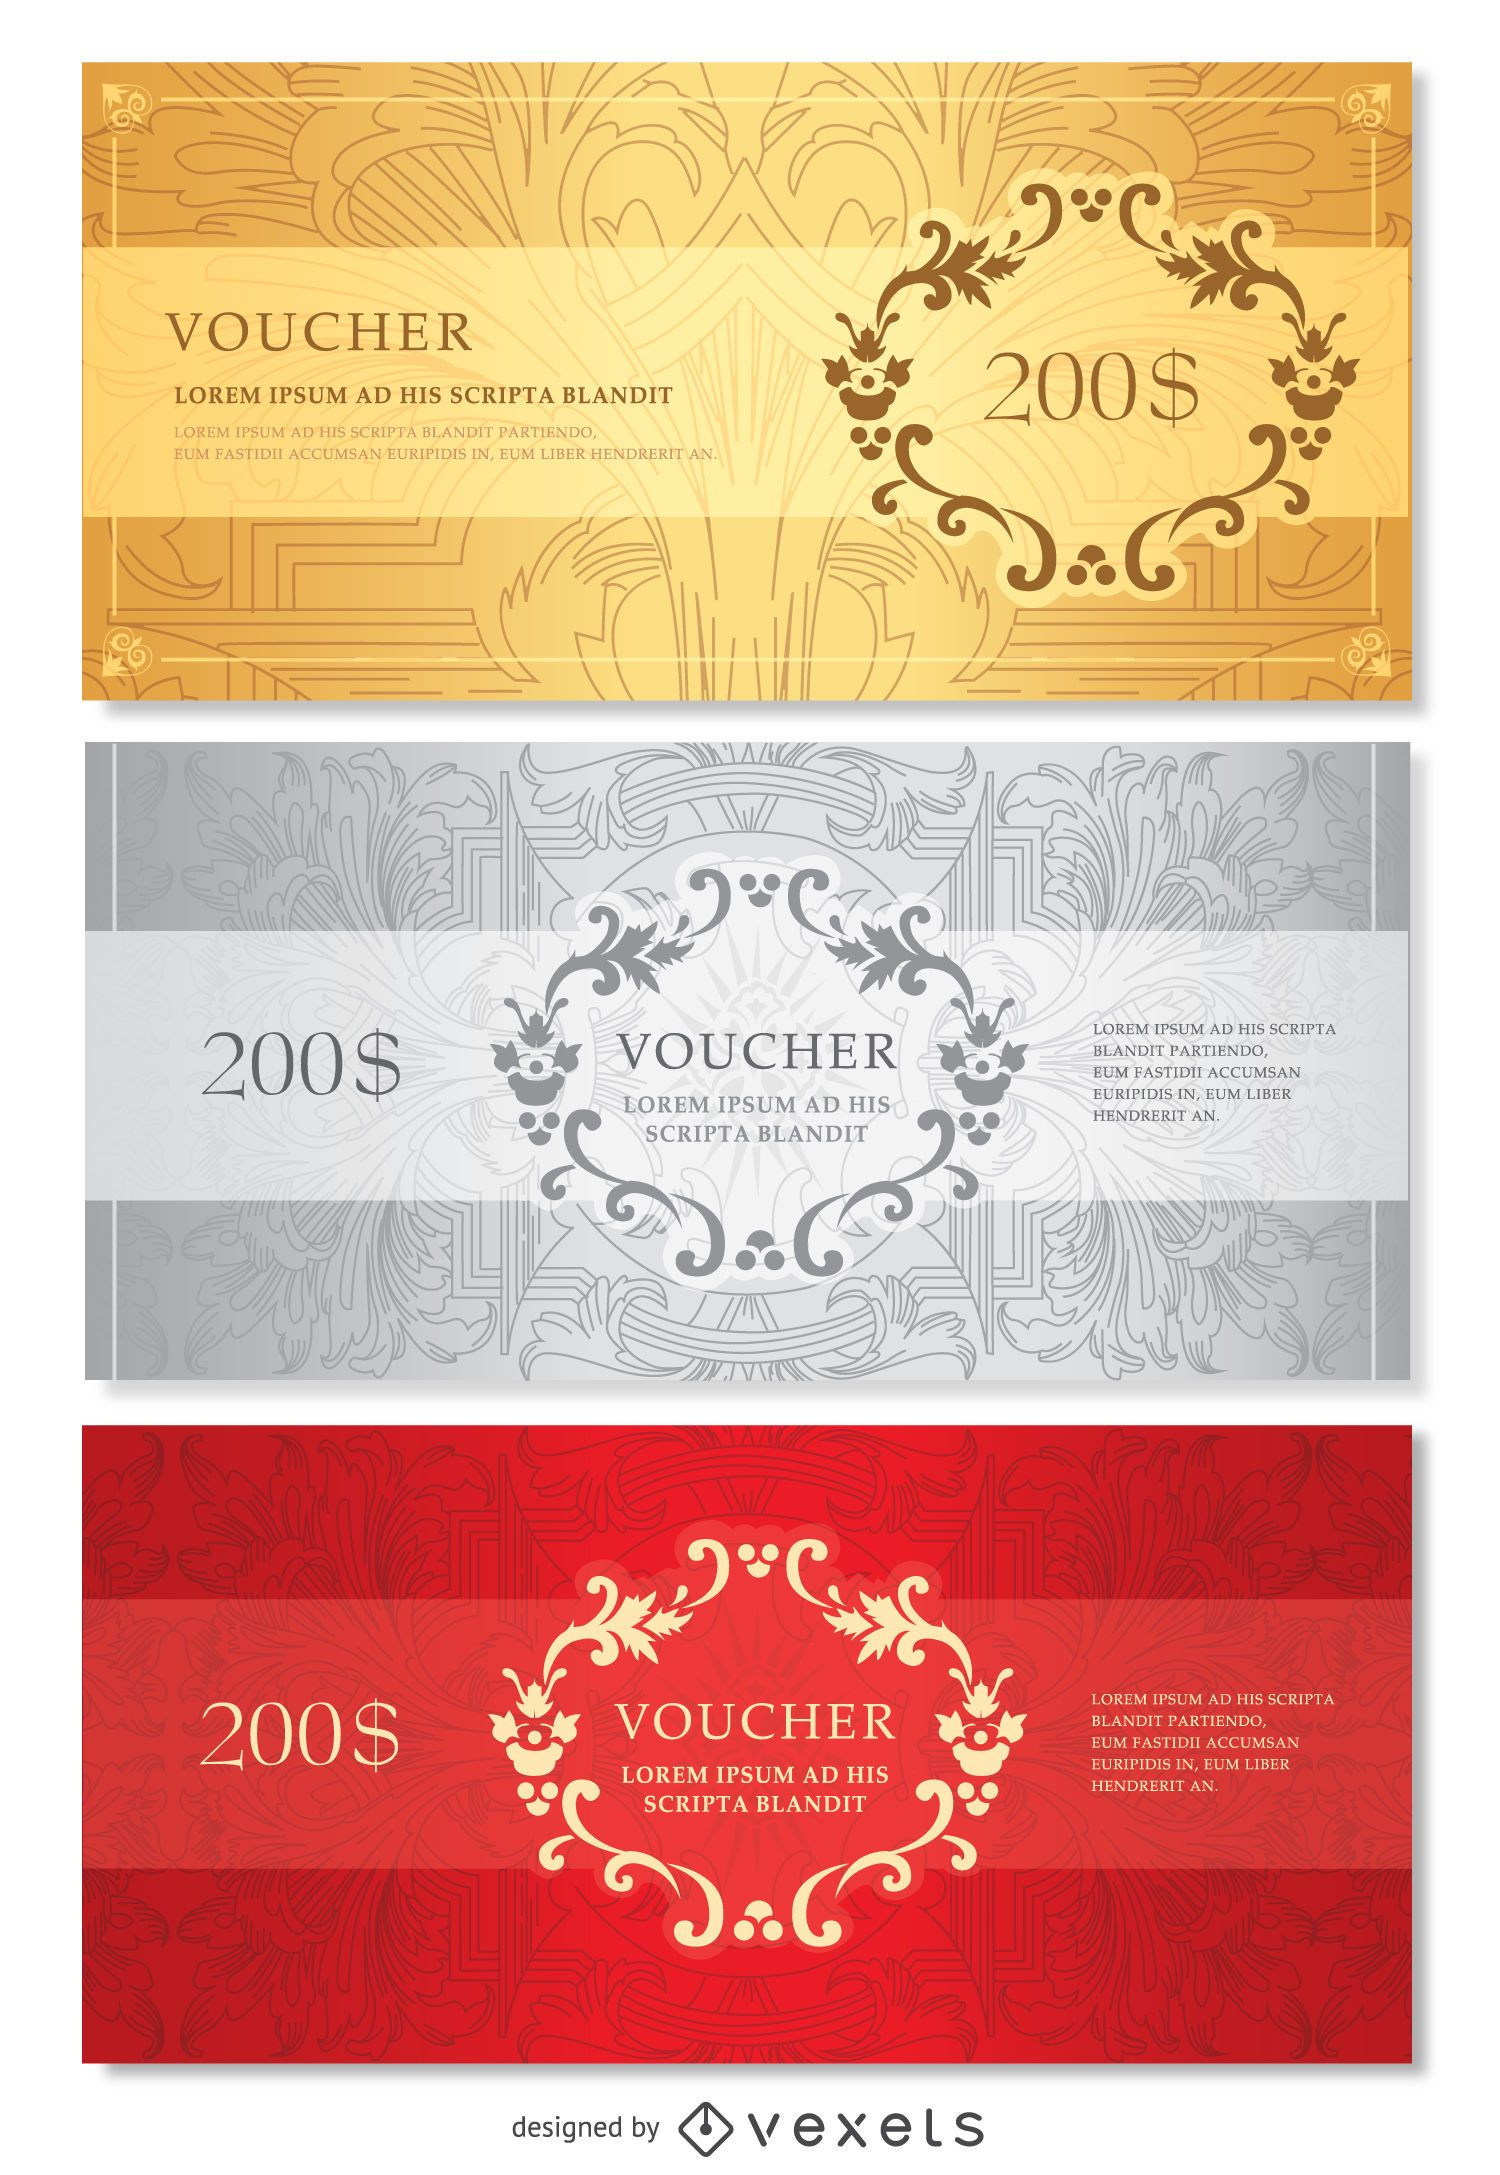 Voucher template Vector download – Voucher Template